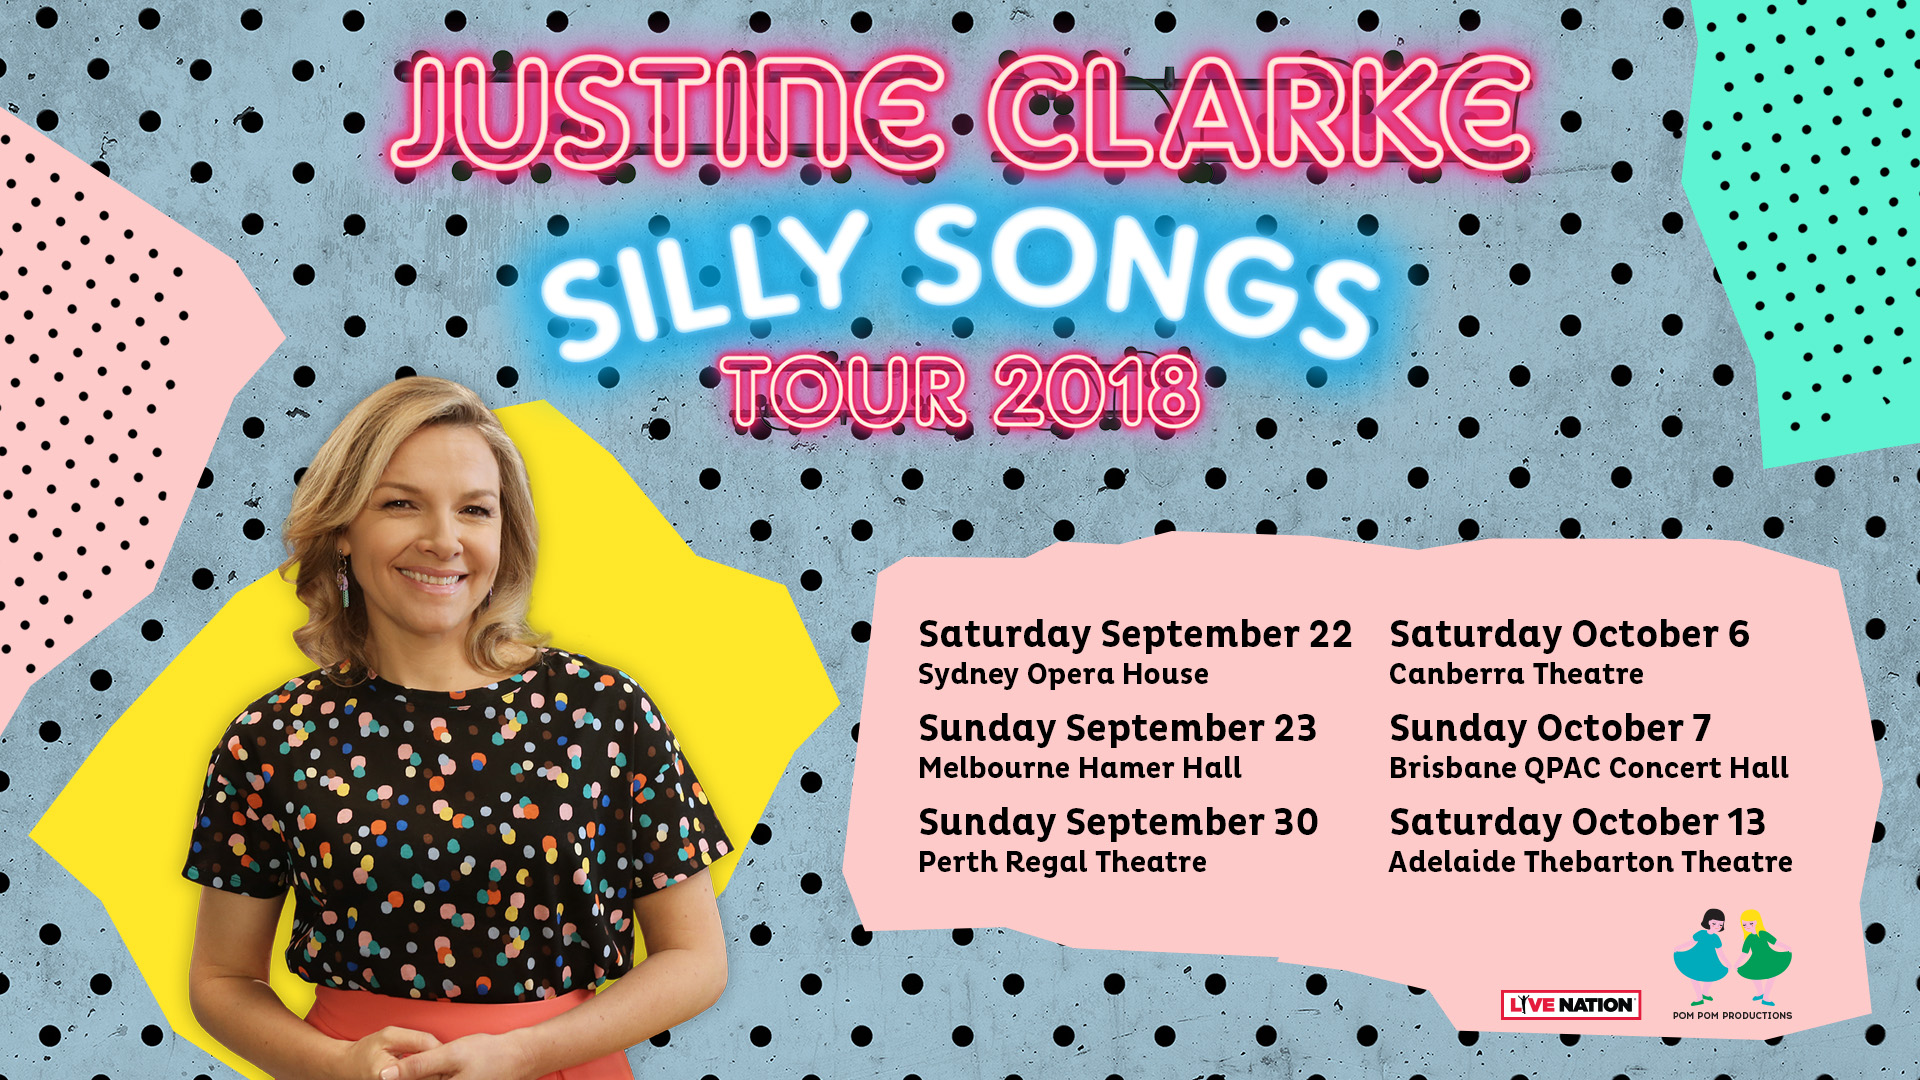 Justine-Clarke-Silly-Songs-Tour-Ticket-Giveaway